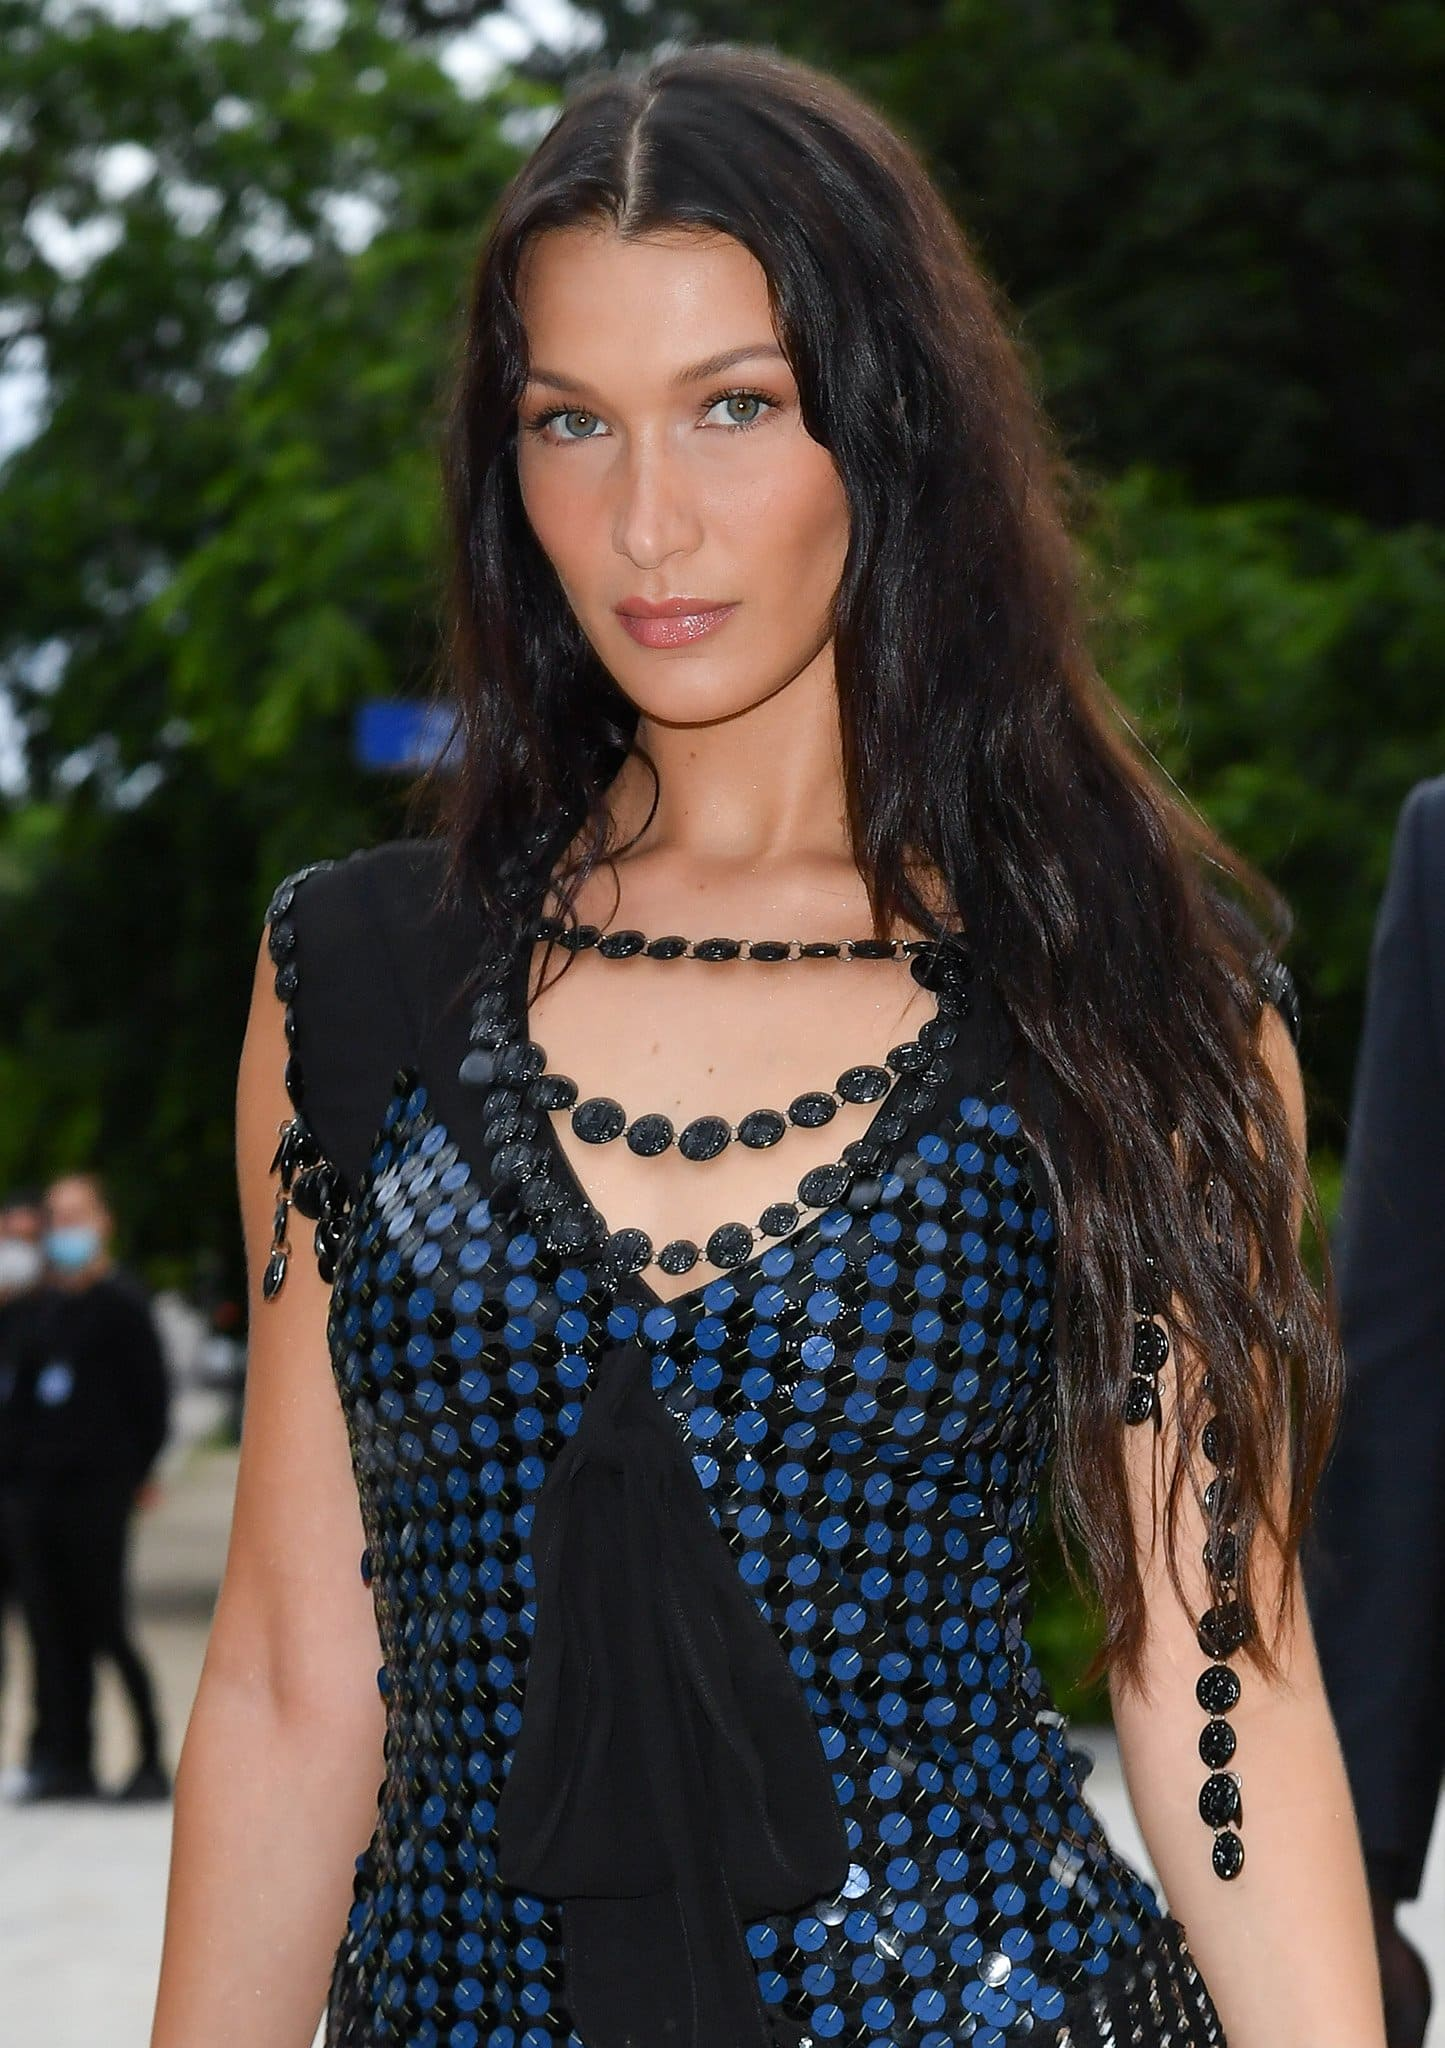 Bella Hadid wears her long hair down in tousled waves and highlights her natural beauty with neutral makeup